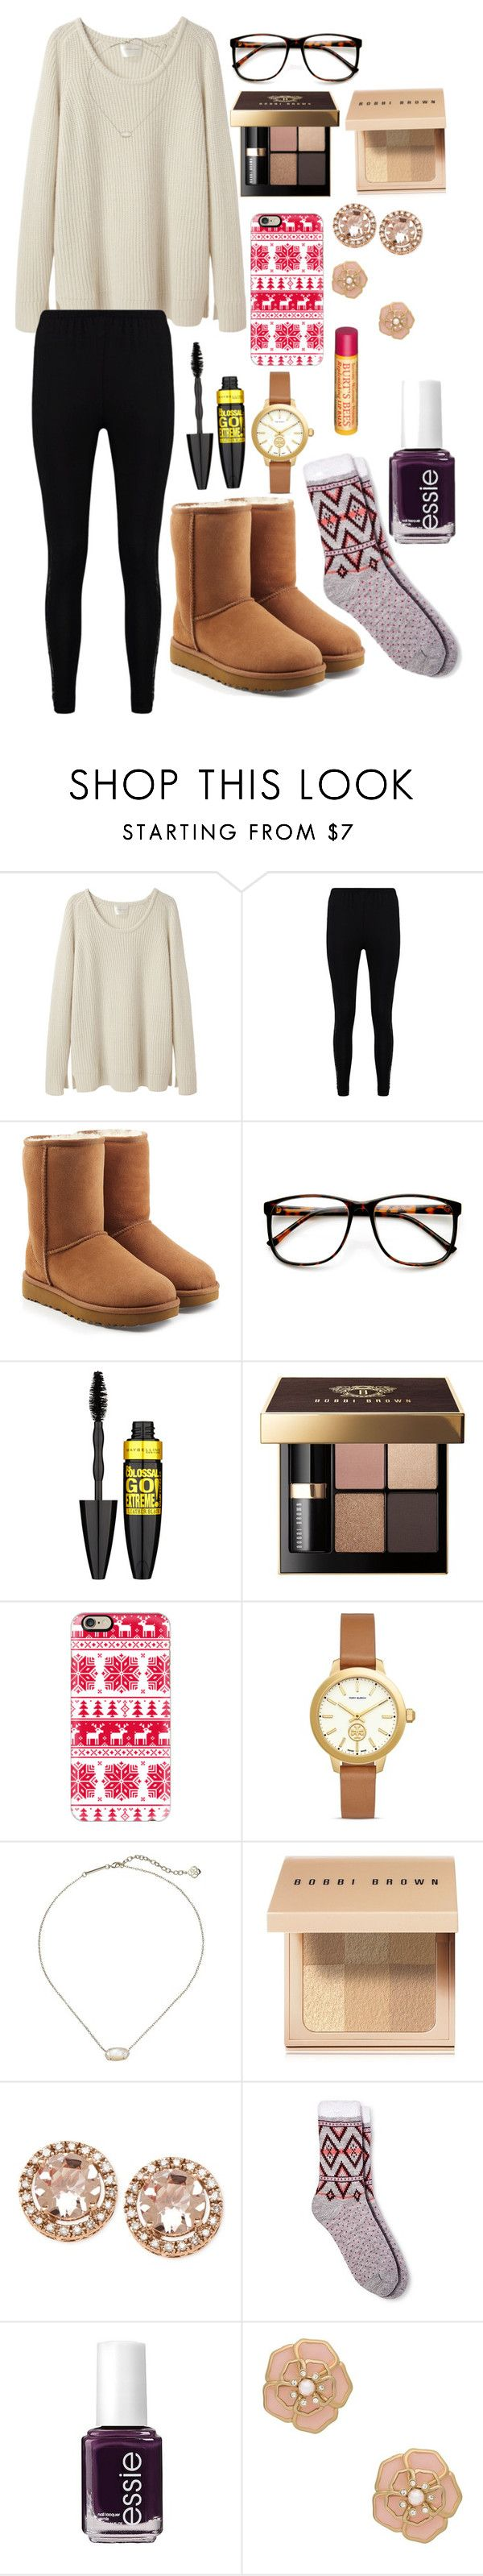 """Untitled #58"" by kaoriroberts ❤ liked on Polyvore featuring La Garçonne Moderne, Boohoo, UGG, ZeroUV, Maybelline, Bobbi Brown Cosmetics, Casetify, Tory Burch, Kendra Scott and Merona"